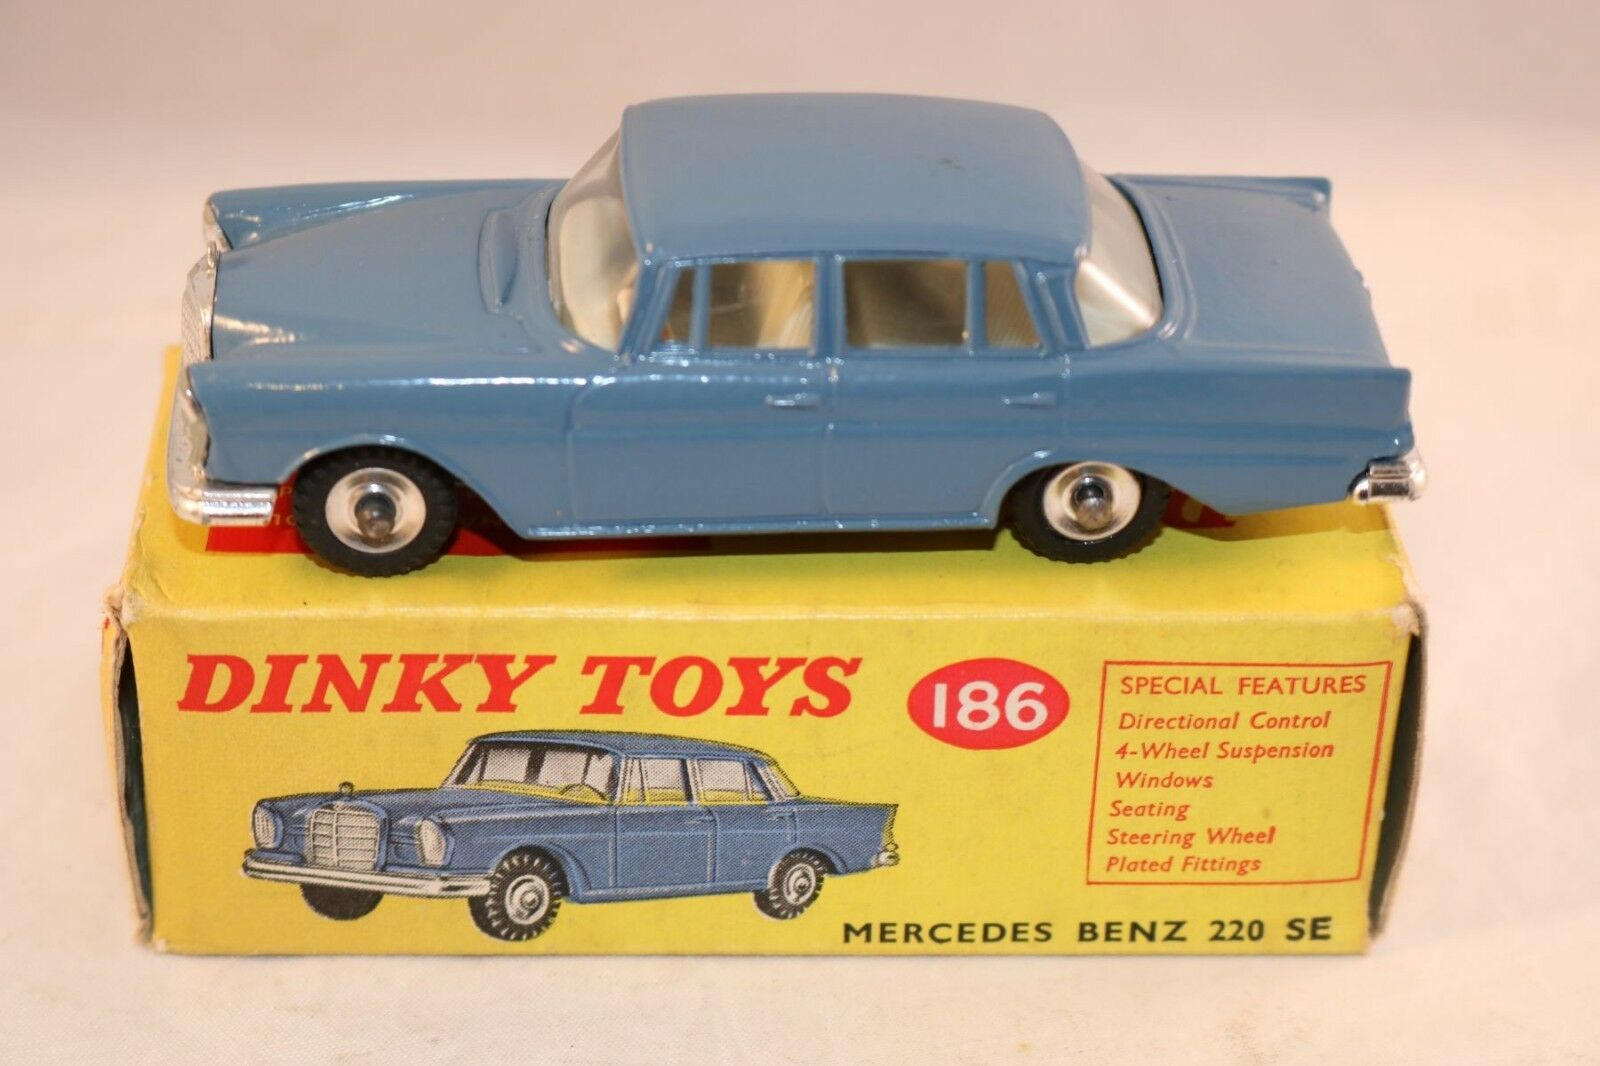 Dinky Toys 186 Mercedes Benz 220SE 99% mint in box all original condition